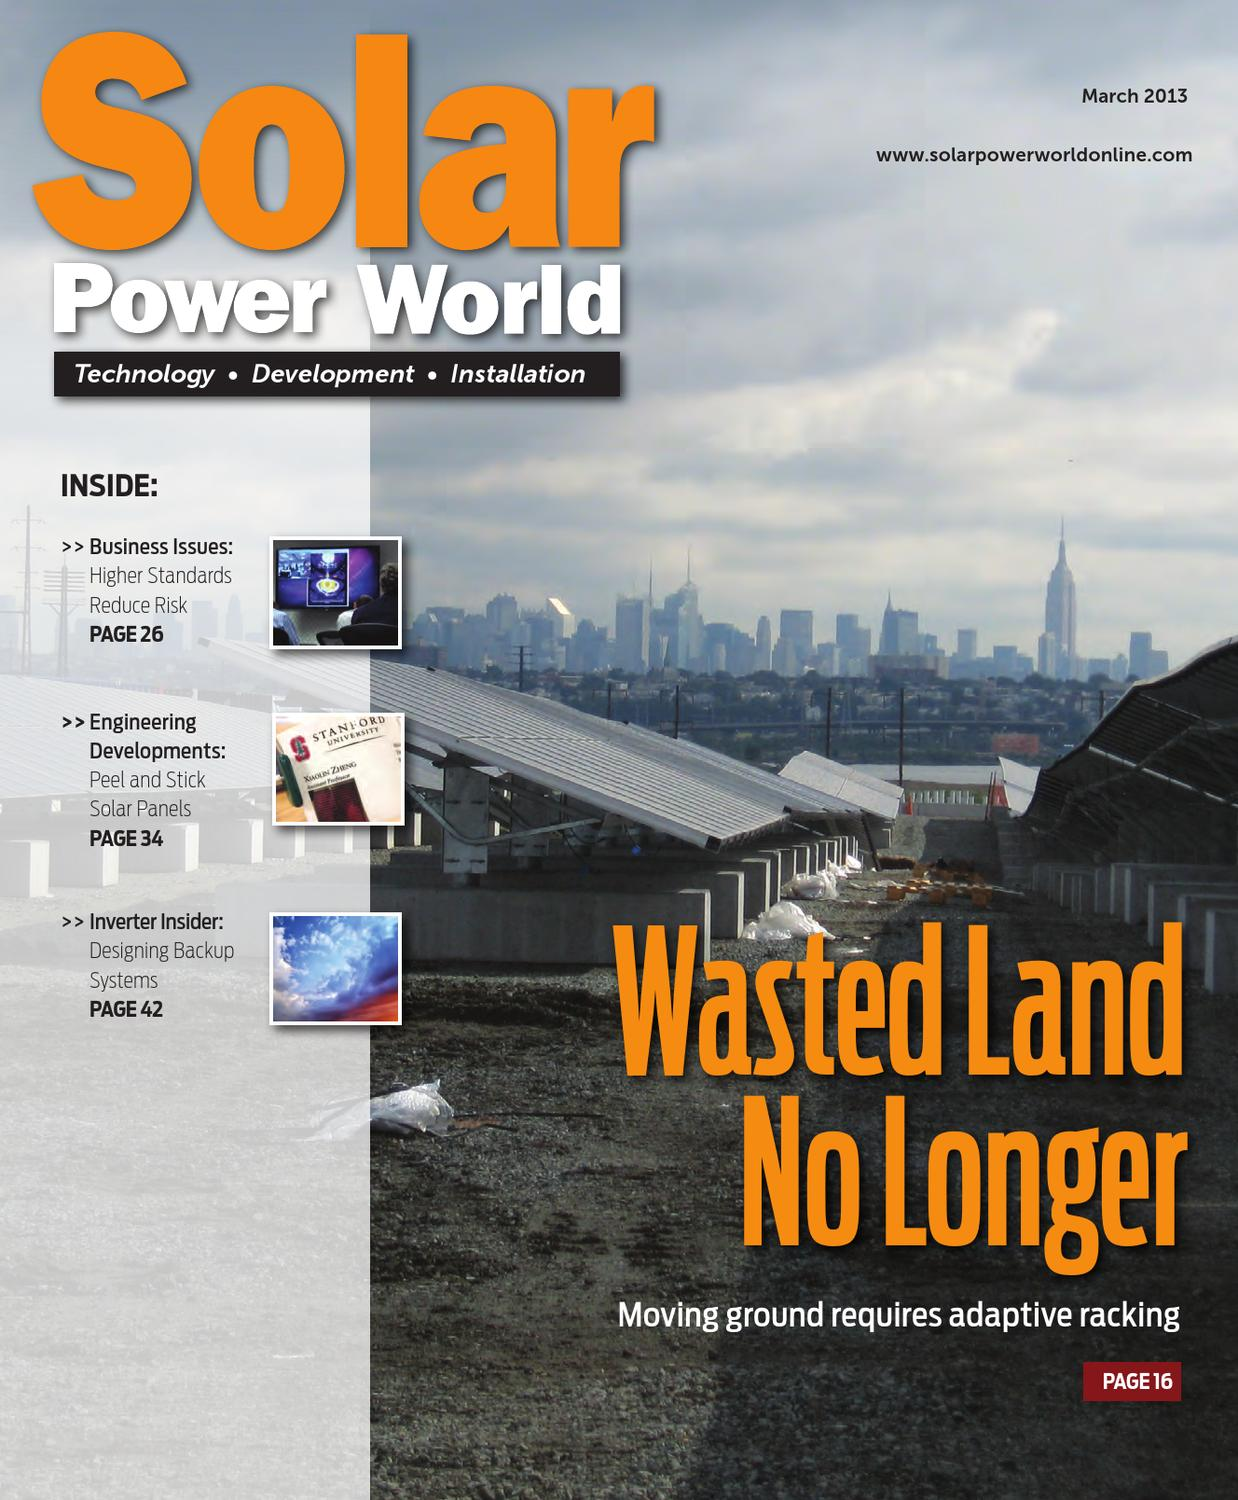 Solar Power World March 2013 By Wtwh Media Llc Issuu Fire Pump Electrical Wiring Furthermore Home Backup Generator